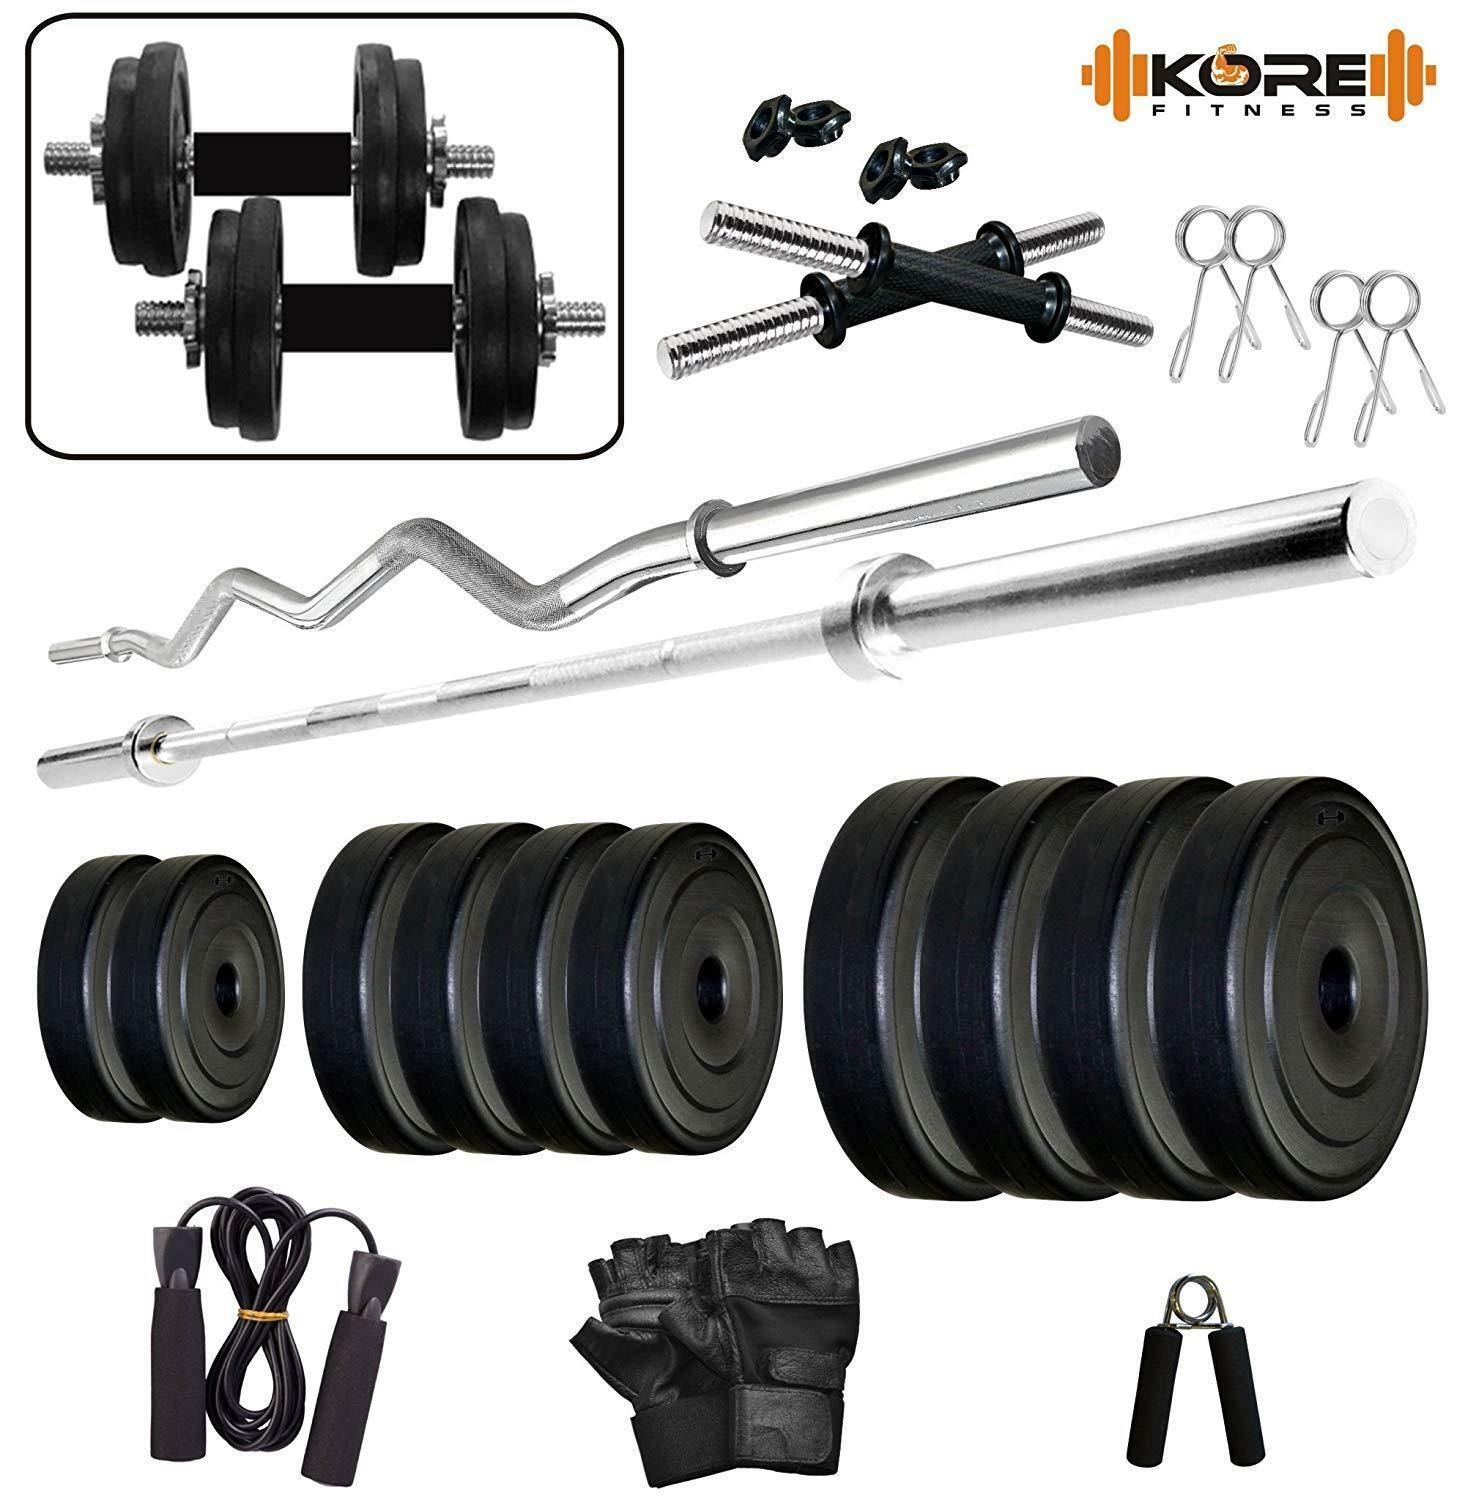 Kore K8kg Combo 2WBSL Dumbbell Rods Comes with Gym Accessories For BodyBuilder